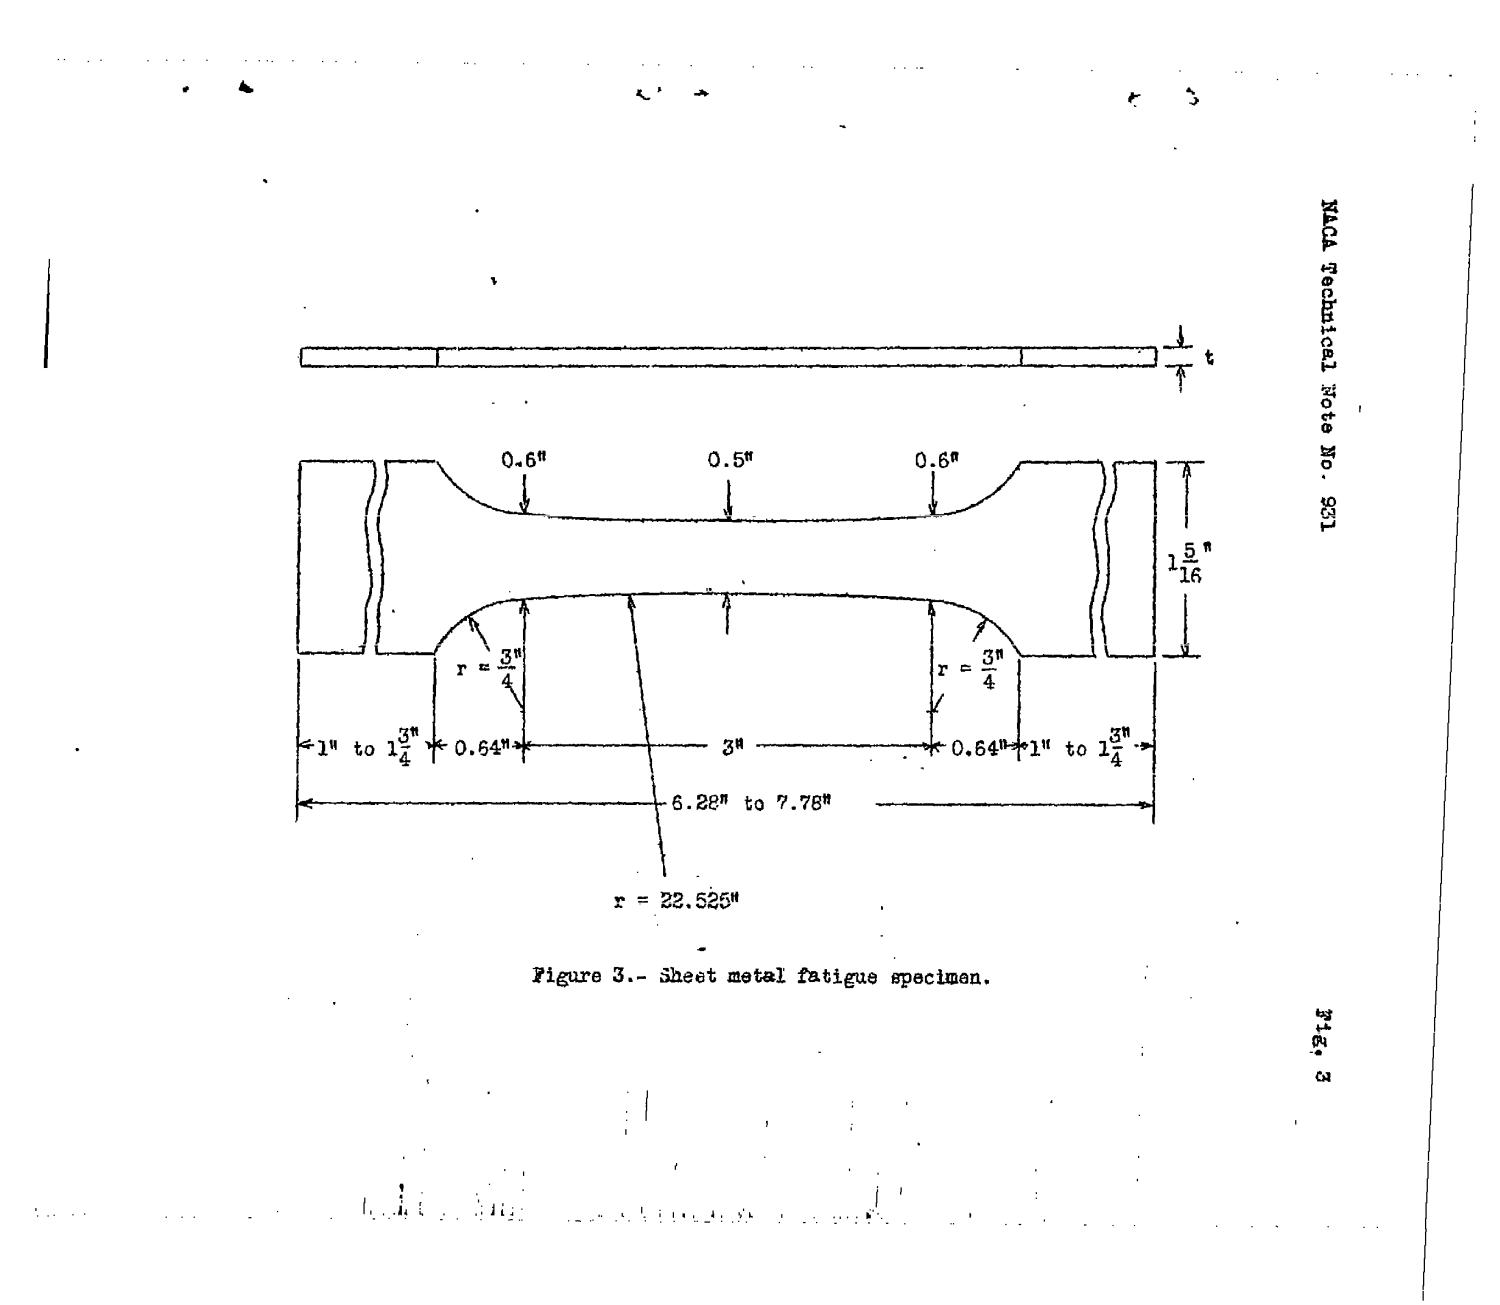 Guides For Preventing Buckling In Axial Fatigue Tests Of Thin Sheet-metal Specimens